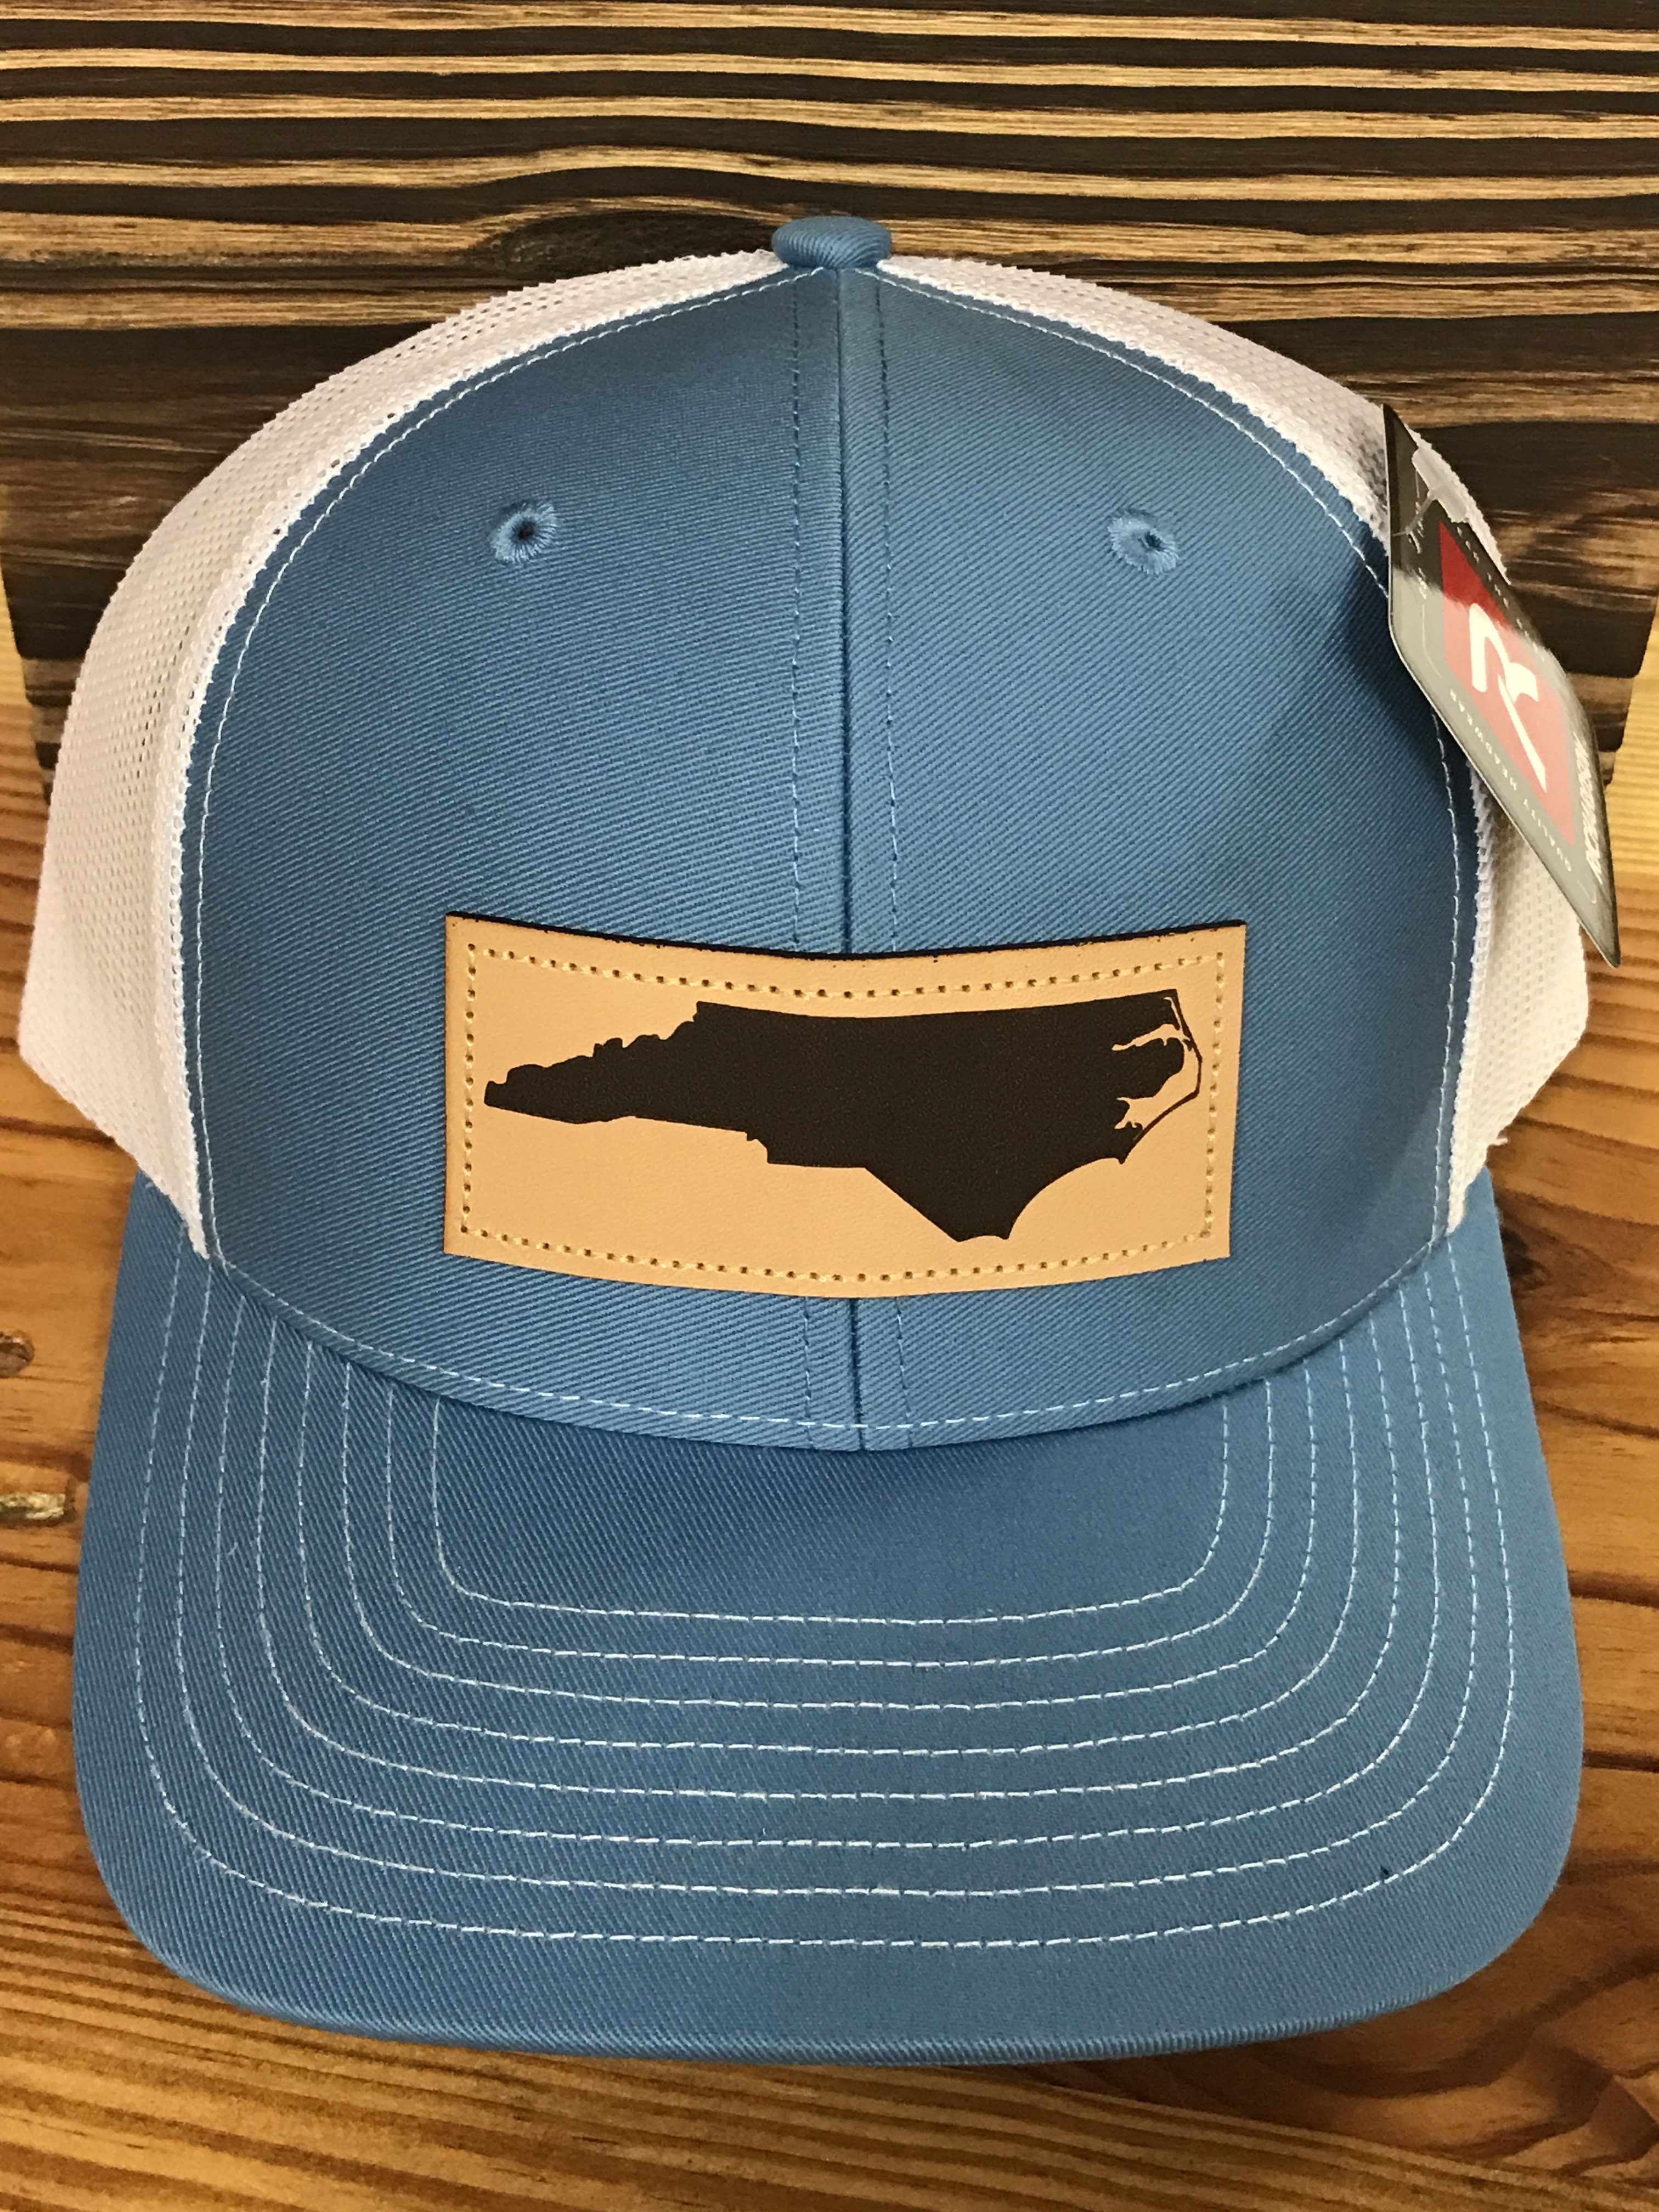 78eb6486992 North Carolina Mesh Back Leather Patch Trucker Hat Light Blue White  Accessories